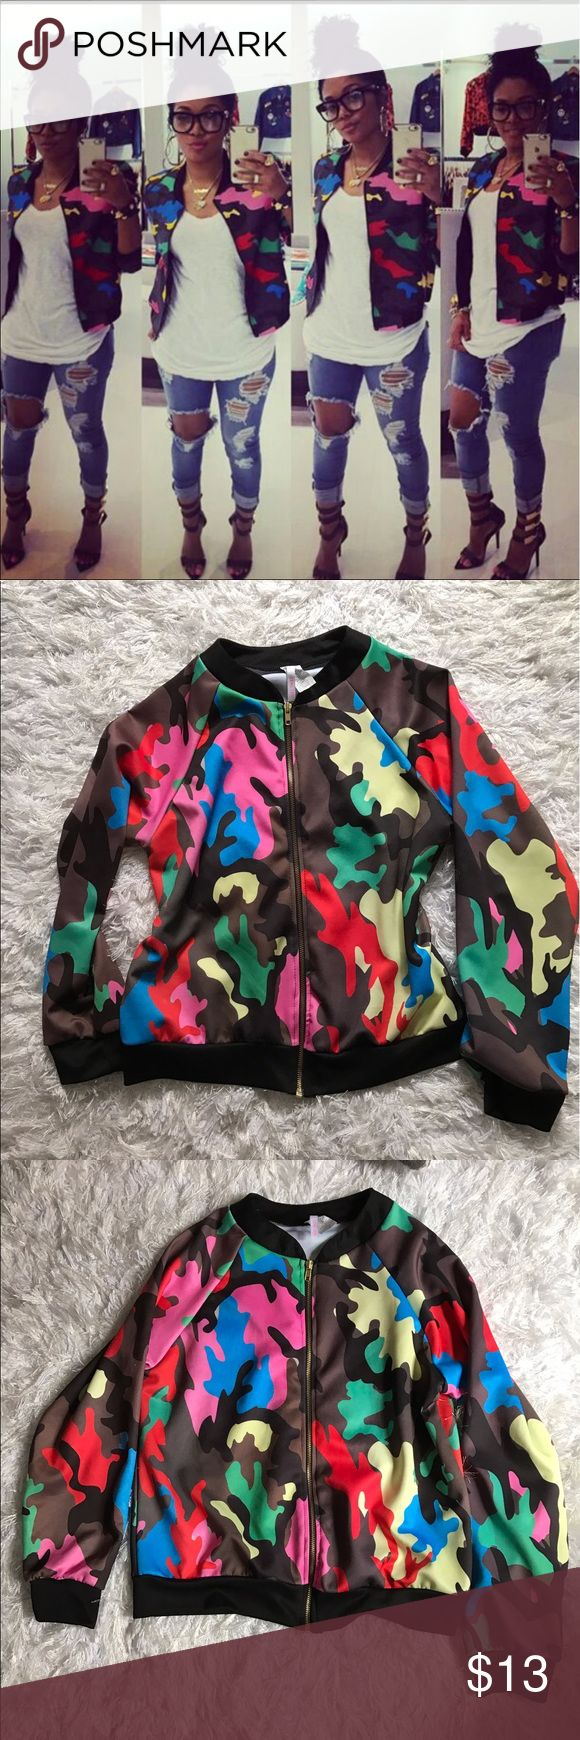 CAMO BOMBER JACKET M/L New! Purchased from Rasheeda Frost website pressed last year. Waist coat not a puffer or waxy nylon material.girly and can be dressed up or down. Valentino CAMO inspired print Jackets & Coats Utility Jackets